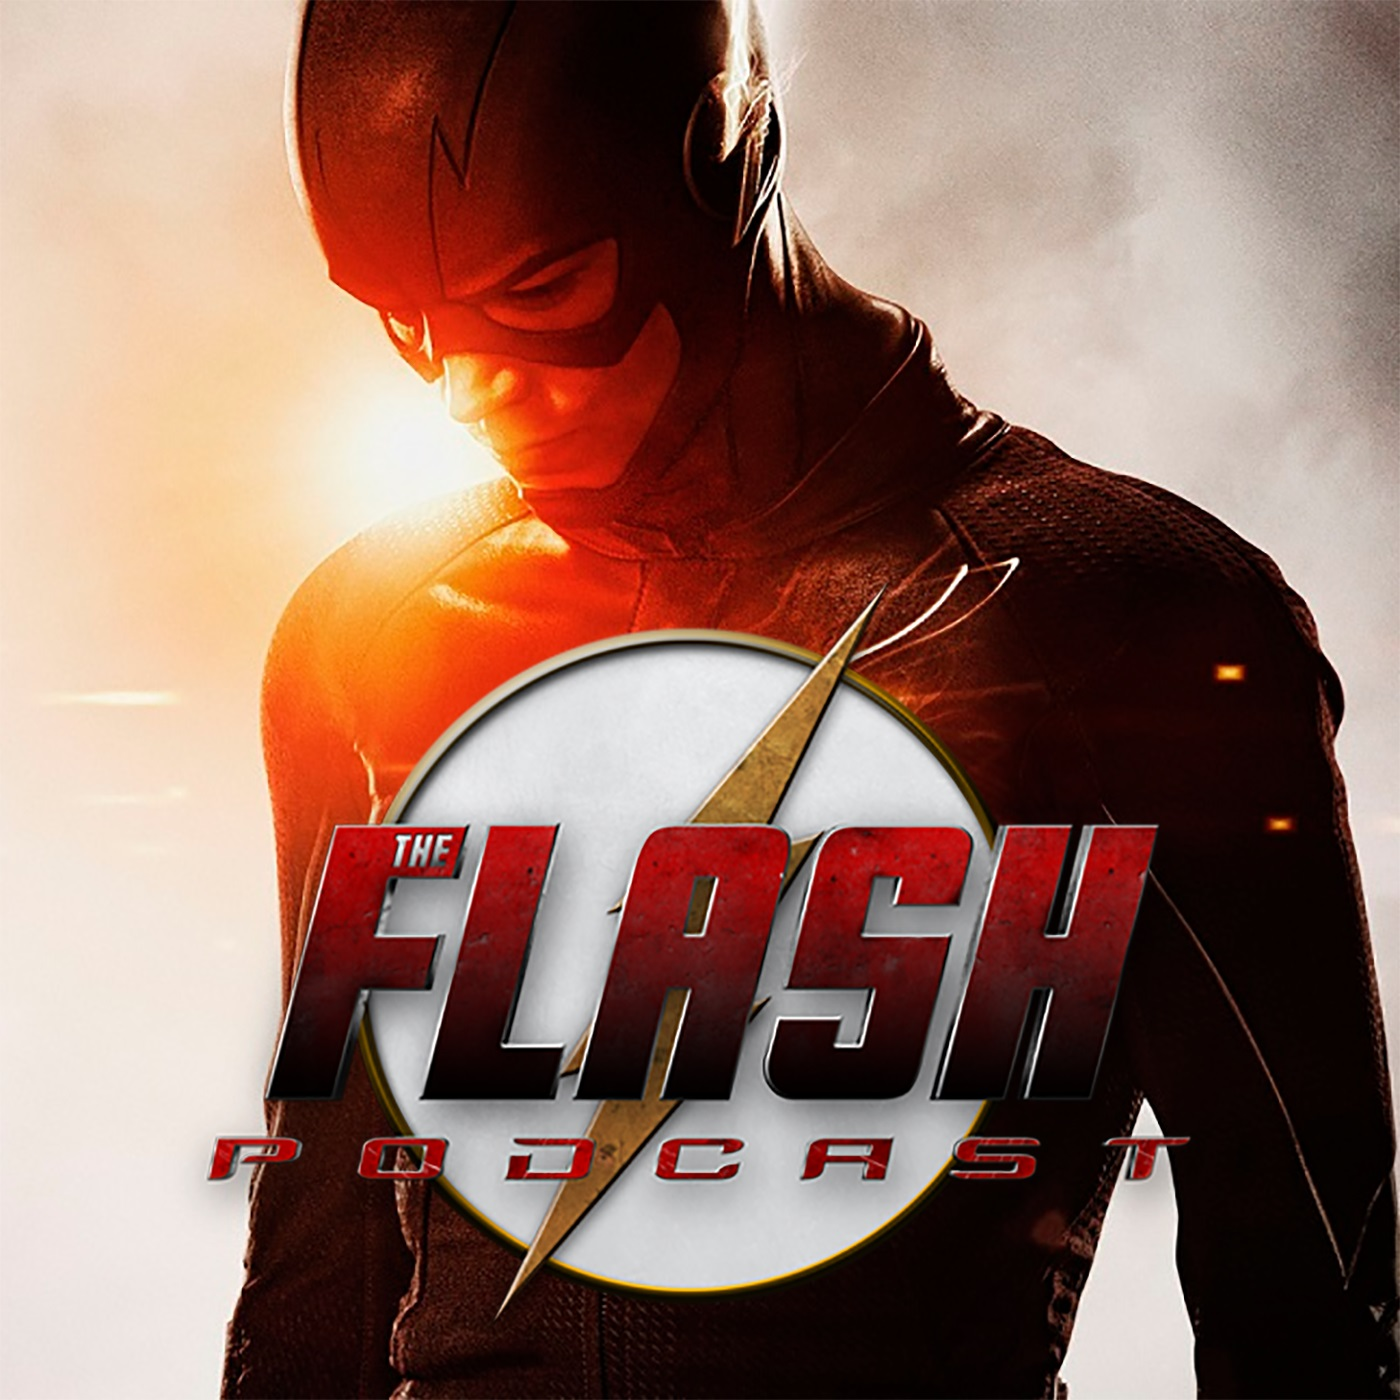 The Flash Podcast Season 2.5 - Episode 15: Flashpoint (Comic) Discussion